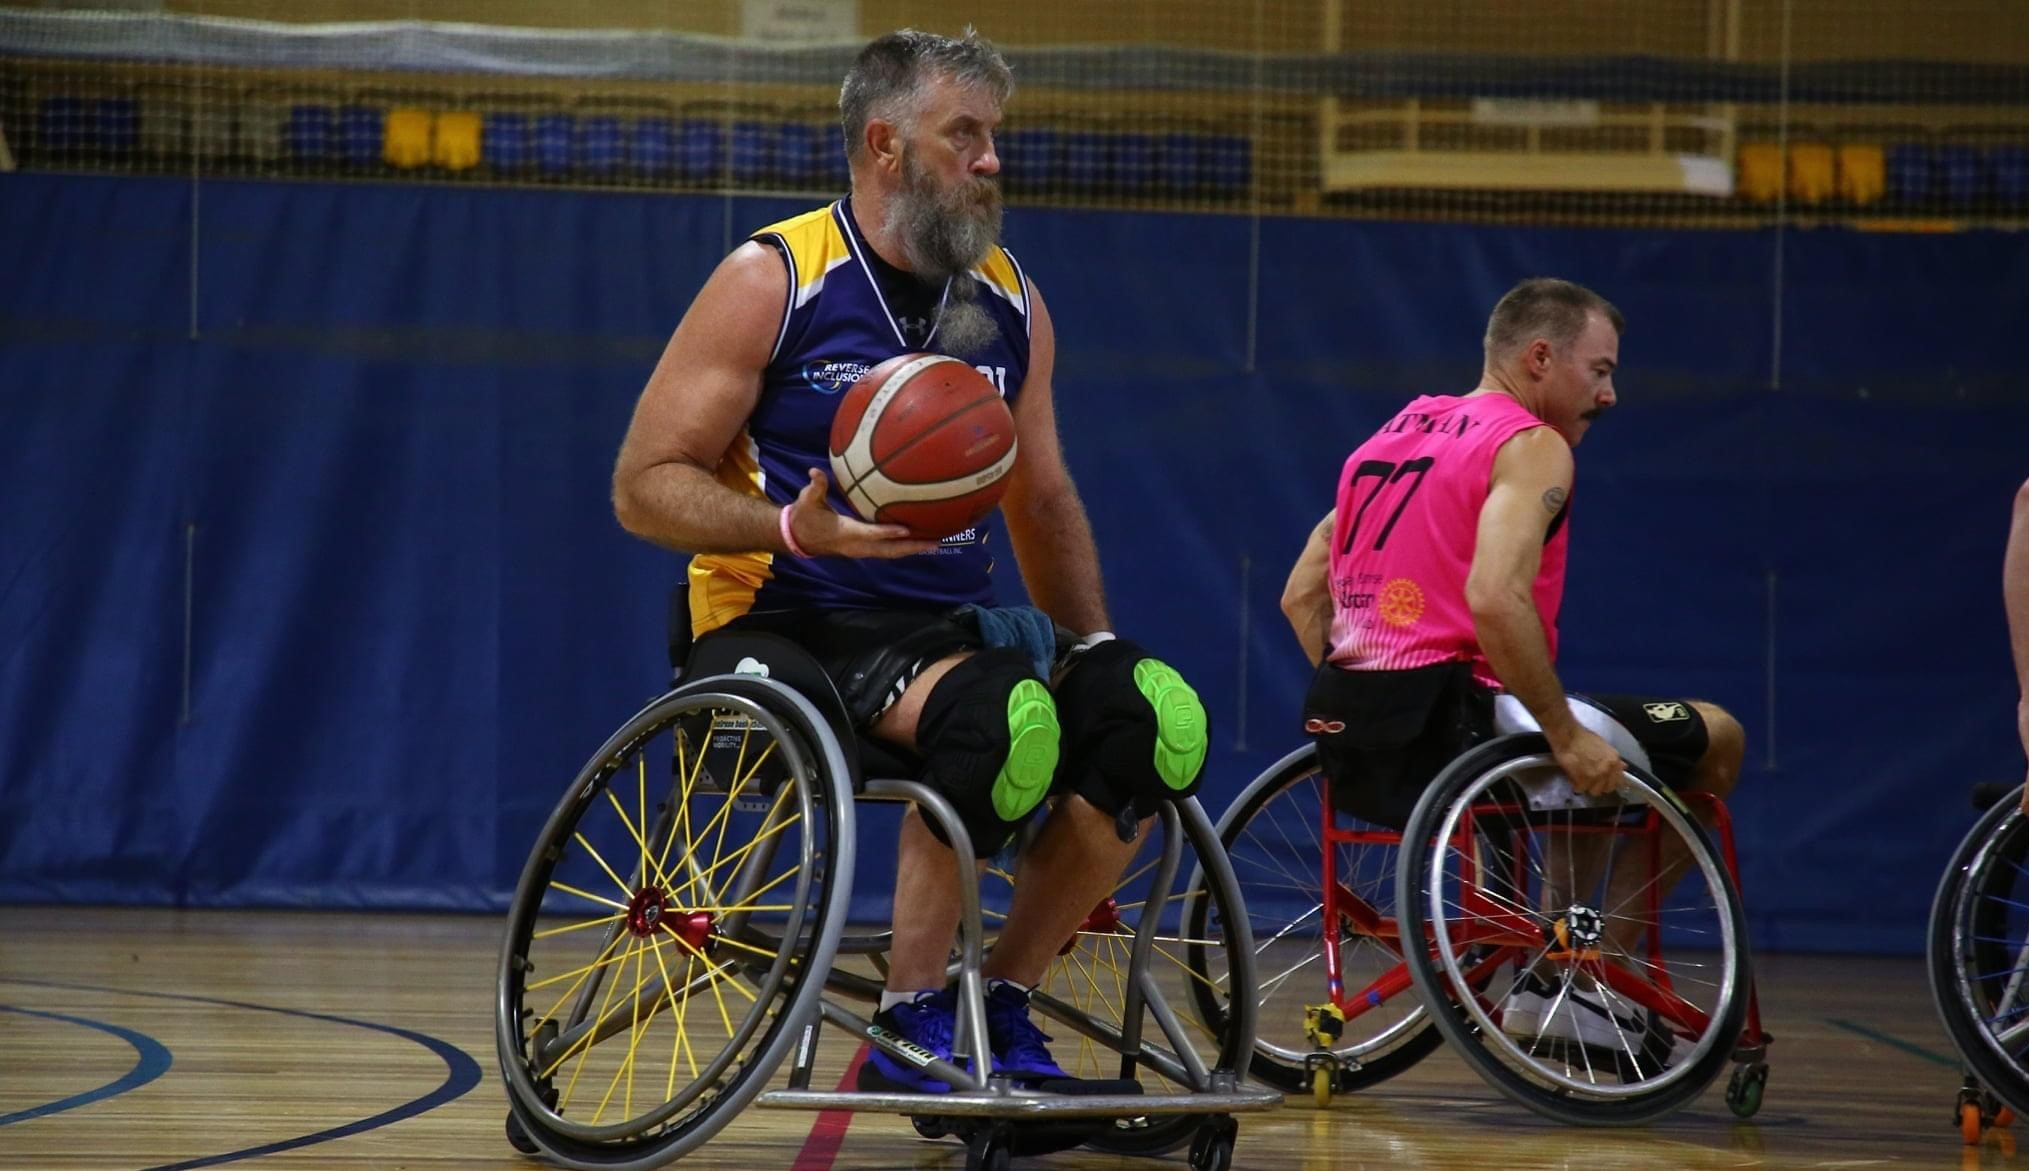 Stephen French trains for the Invictus Games.